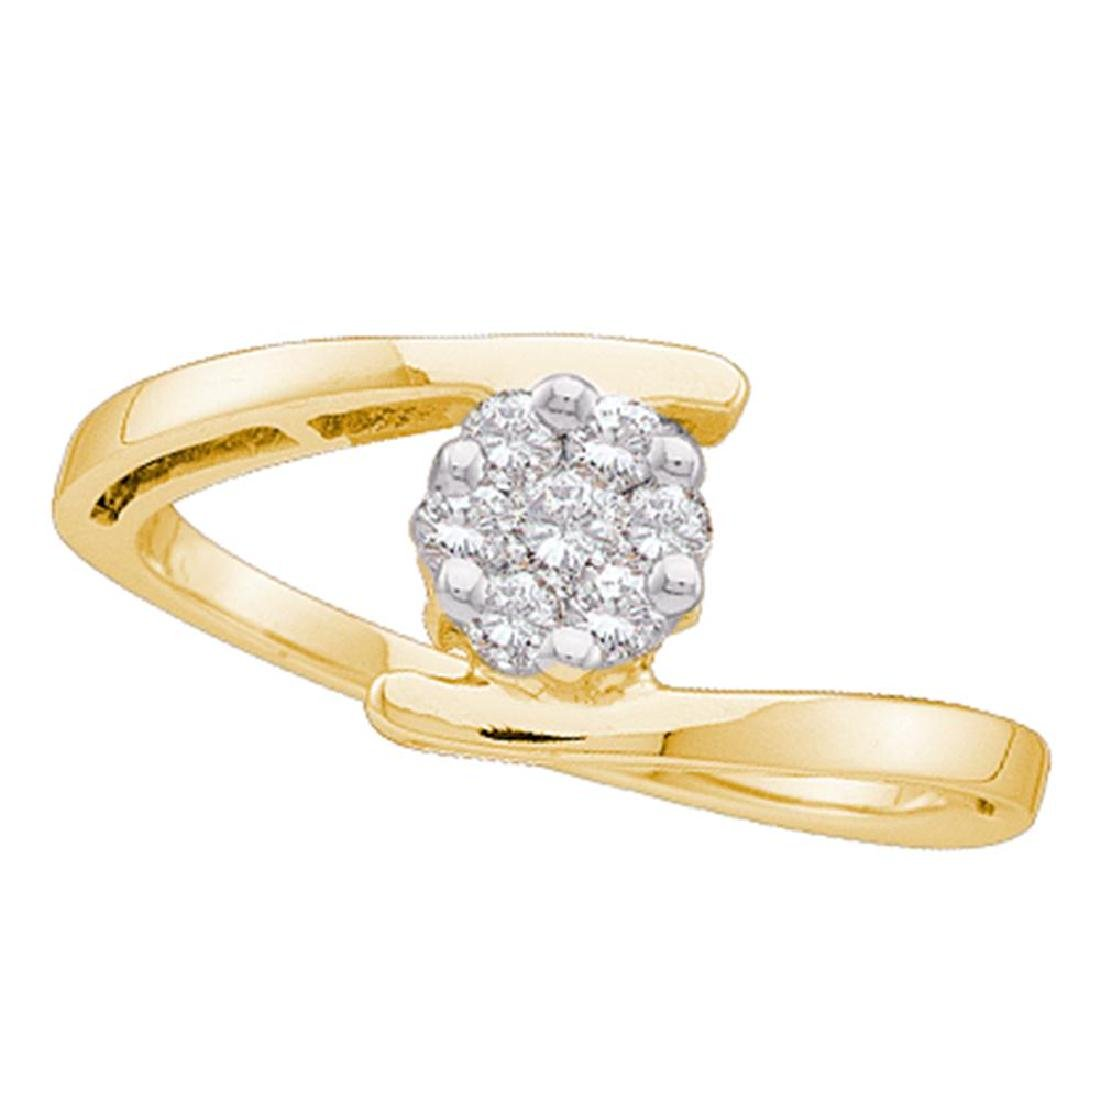 0.25 CTW Diamond Cluster Ring 14KT Yellow Gold -